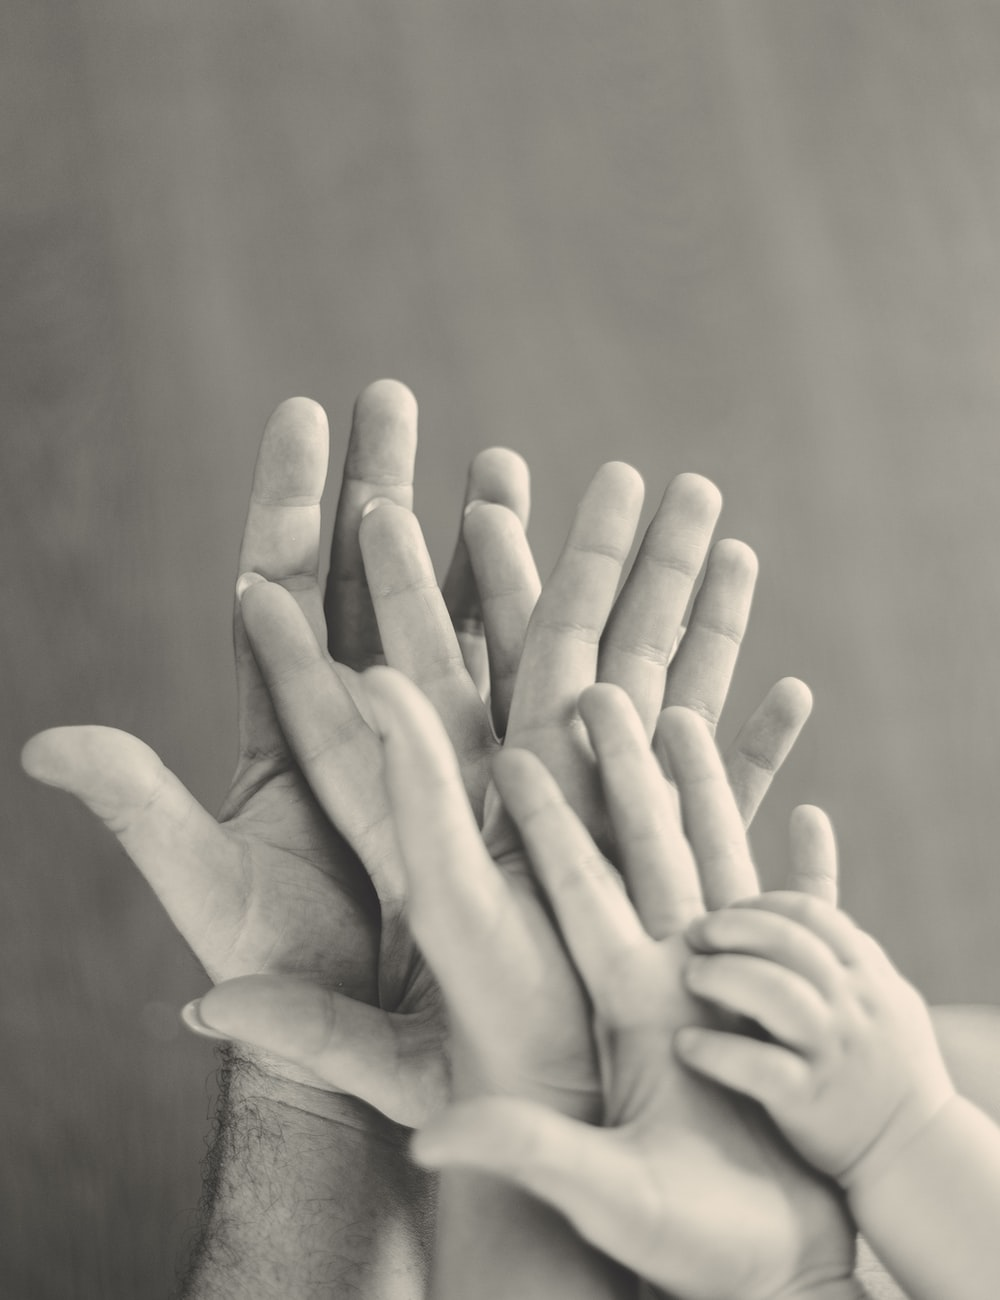 grayscale photo of family's hands